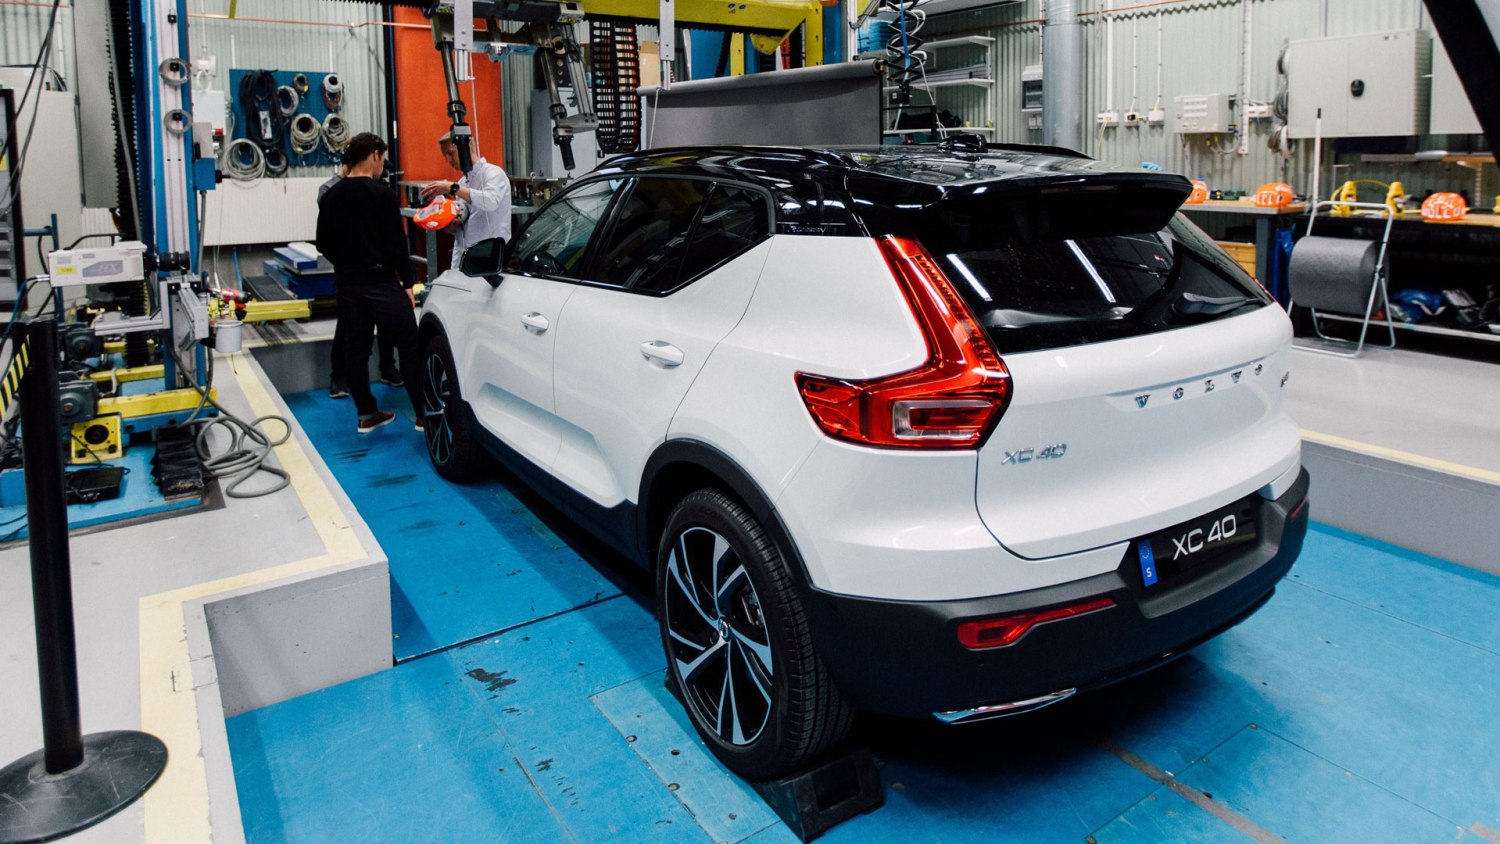 Volvo XC40 cyclist safety